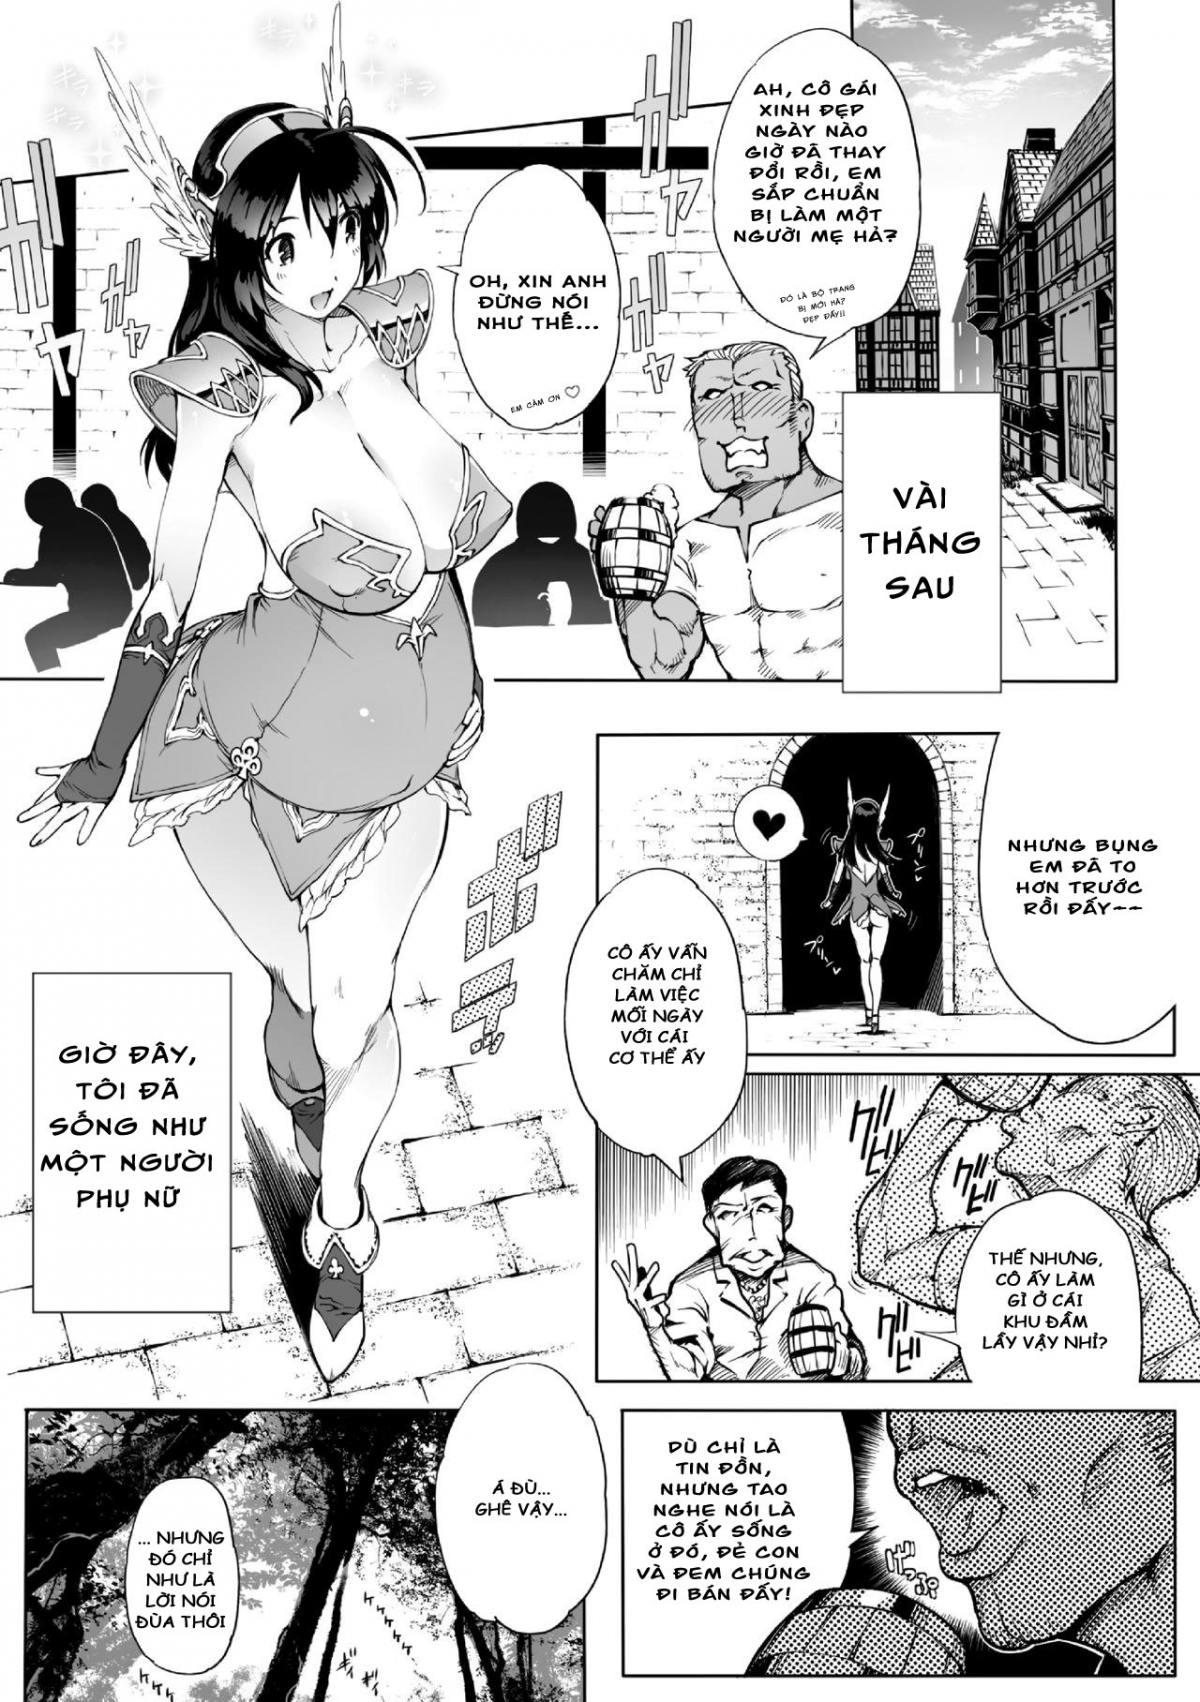 HentaiVN.net - Ảnh 21 - Roper Quest: And then to a pregnant belly - Roper Quest - Soshite Botebara e... - Oneshot